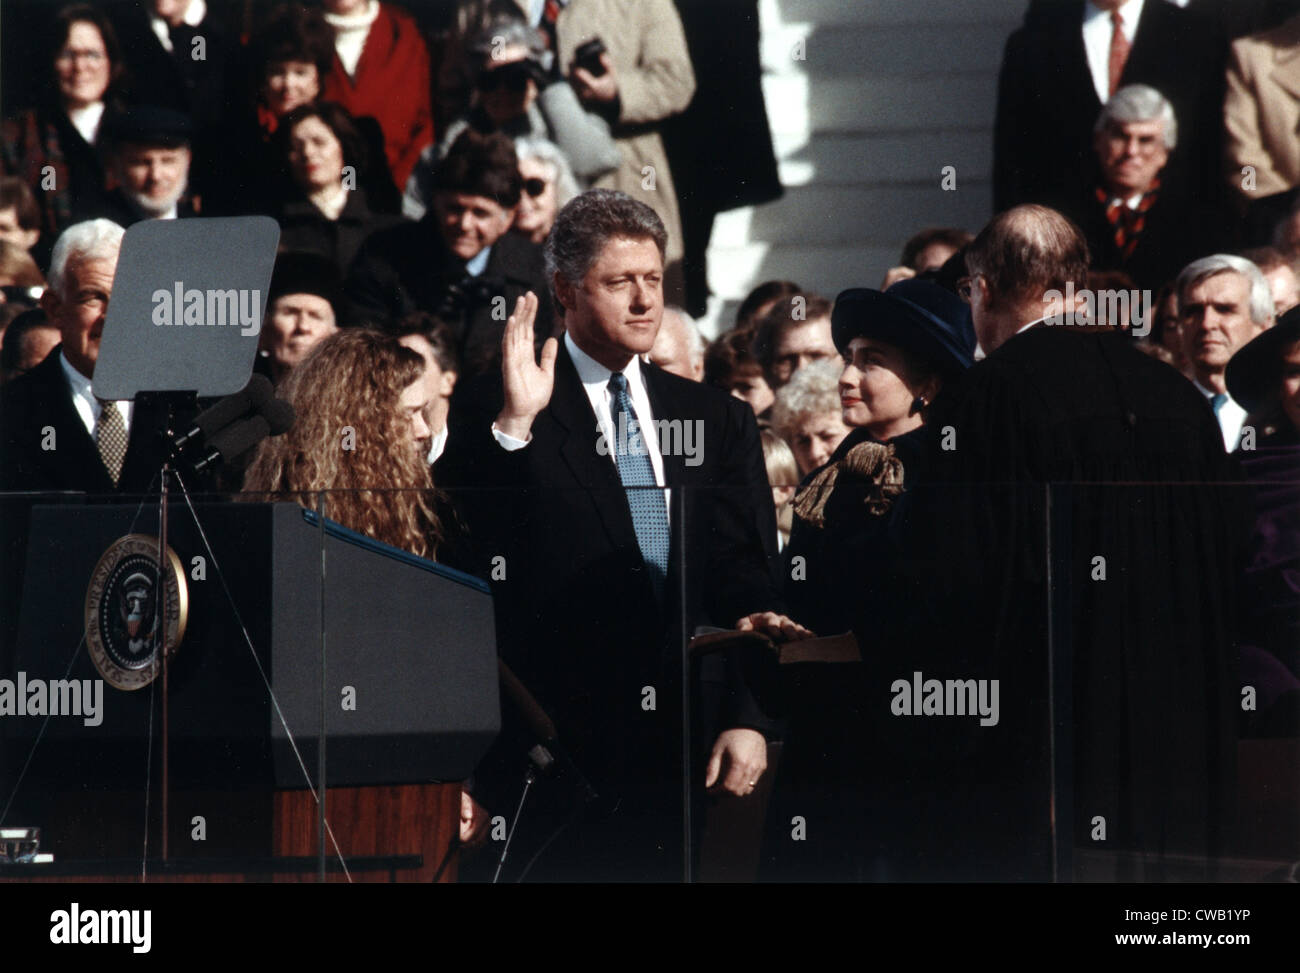 Chelsea clinton stock photos chelsea clinton stock images alamy - When did clinton take office ...